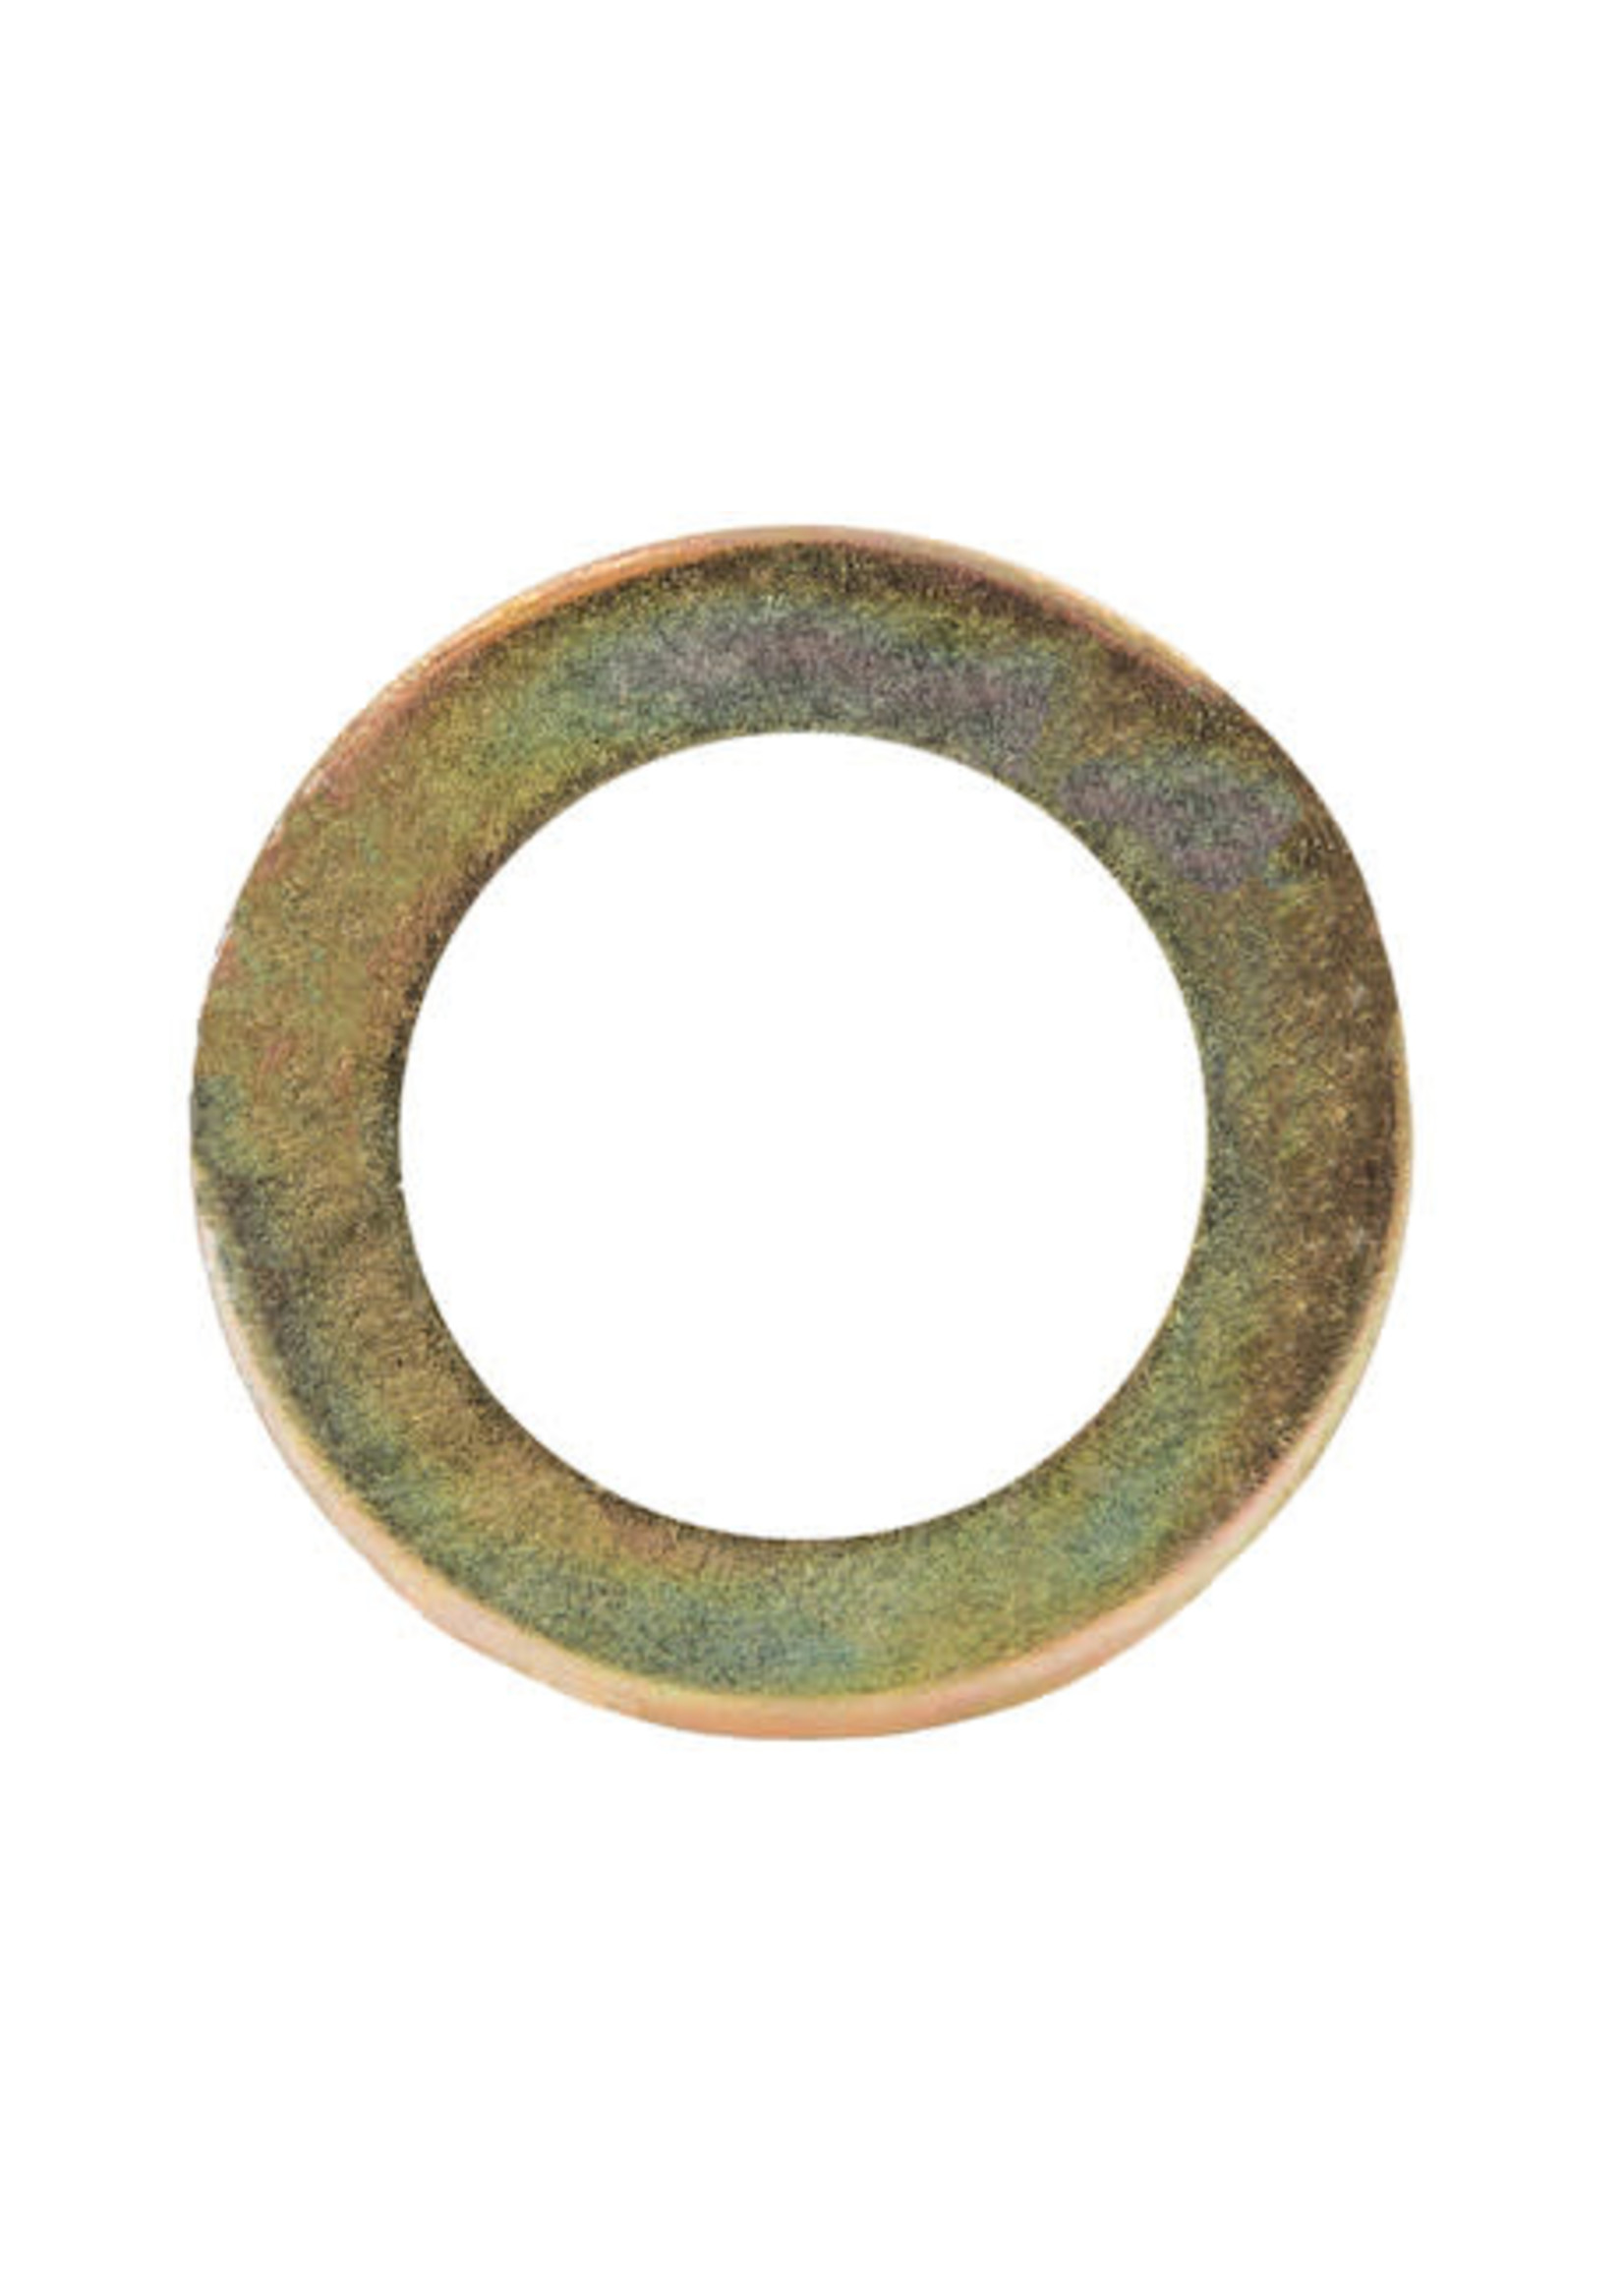 SAM SAM Shoe Washer 1/8 Inch Thick-Replaces OEM #91109